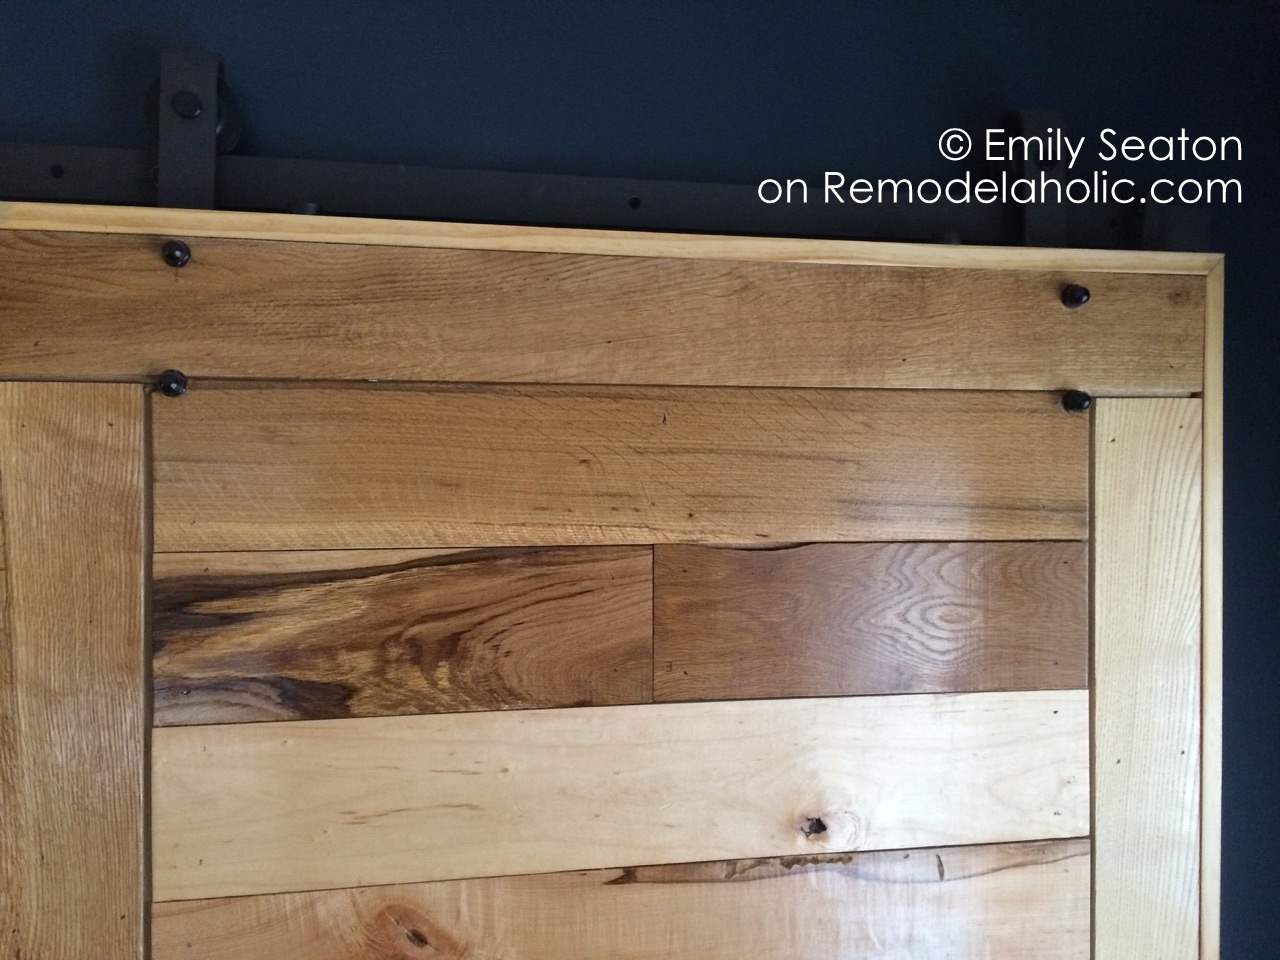 How To how to build door pics : Remodelaholic | How to Build a Wood Chevron Barn Door